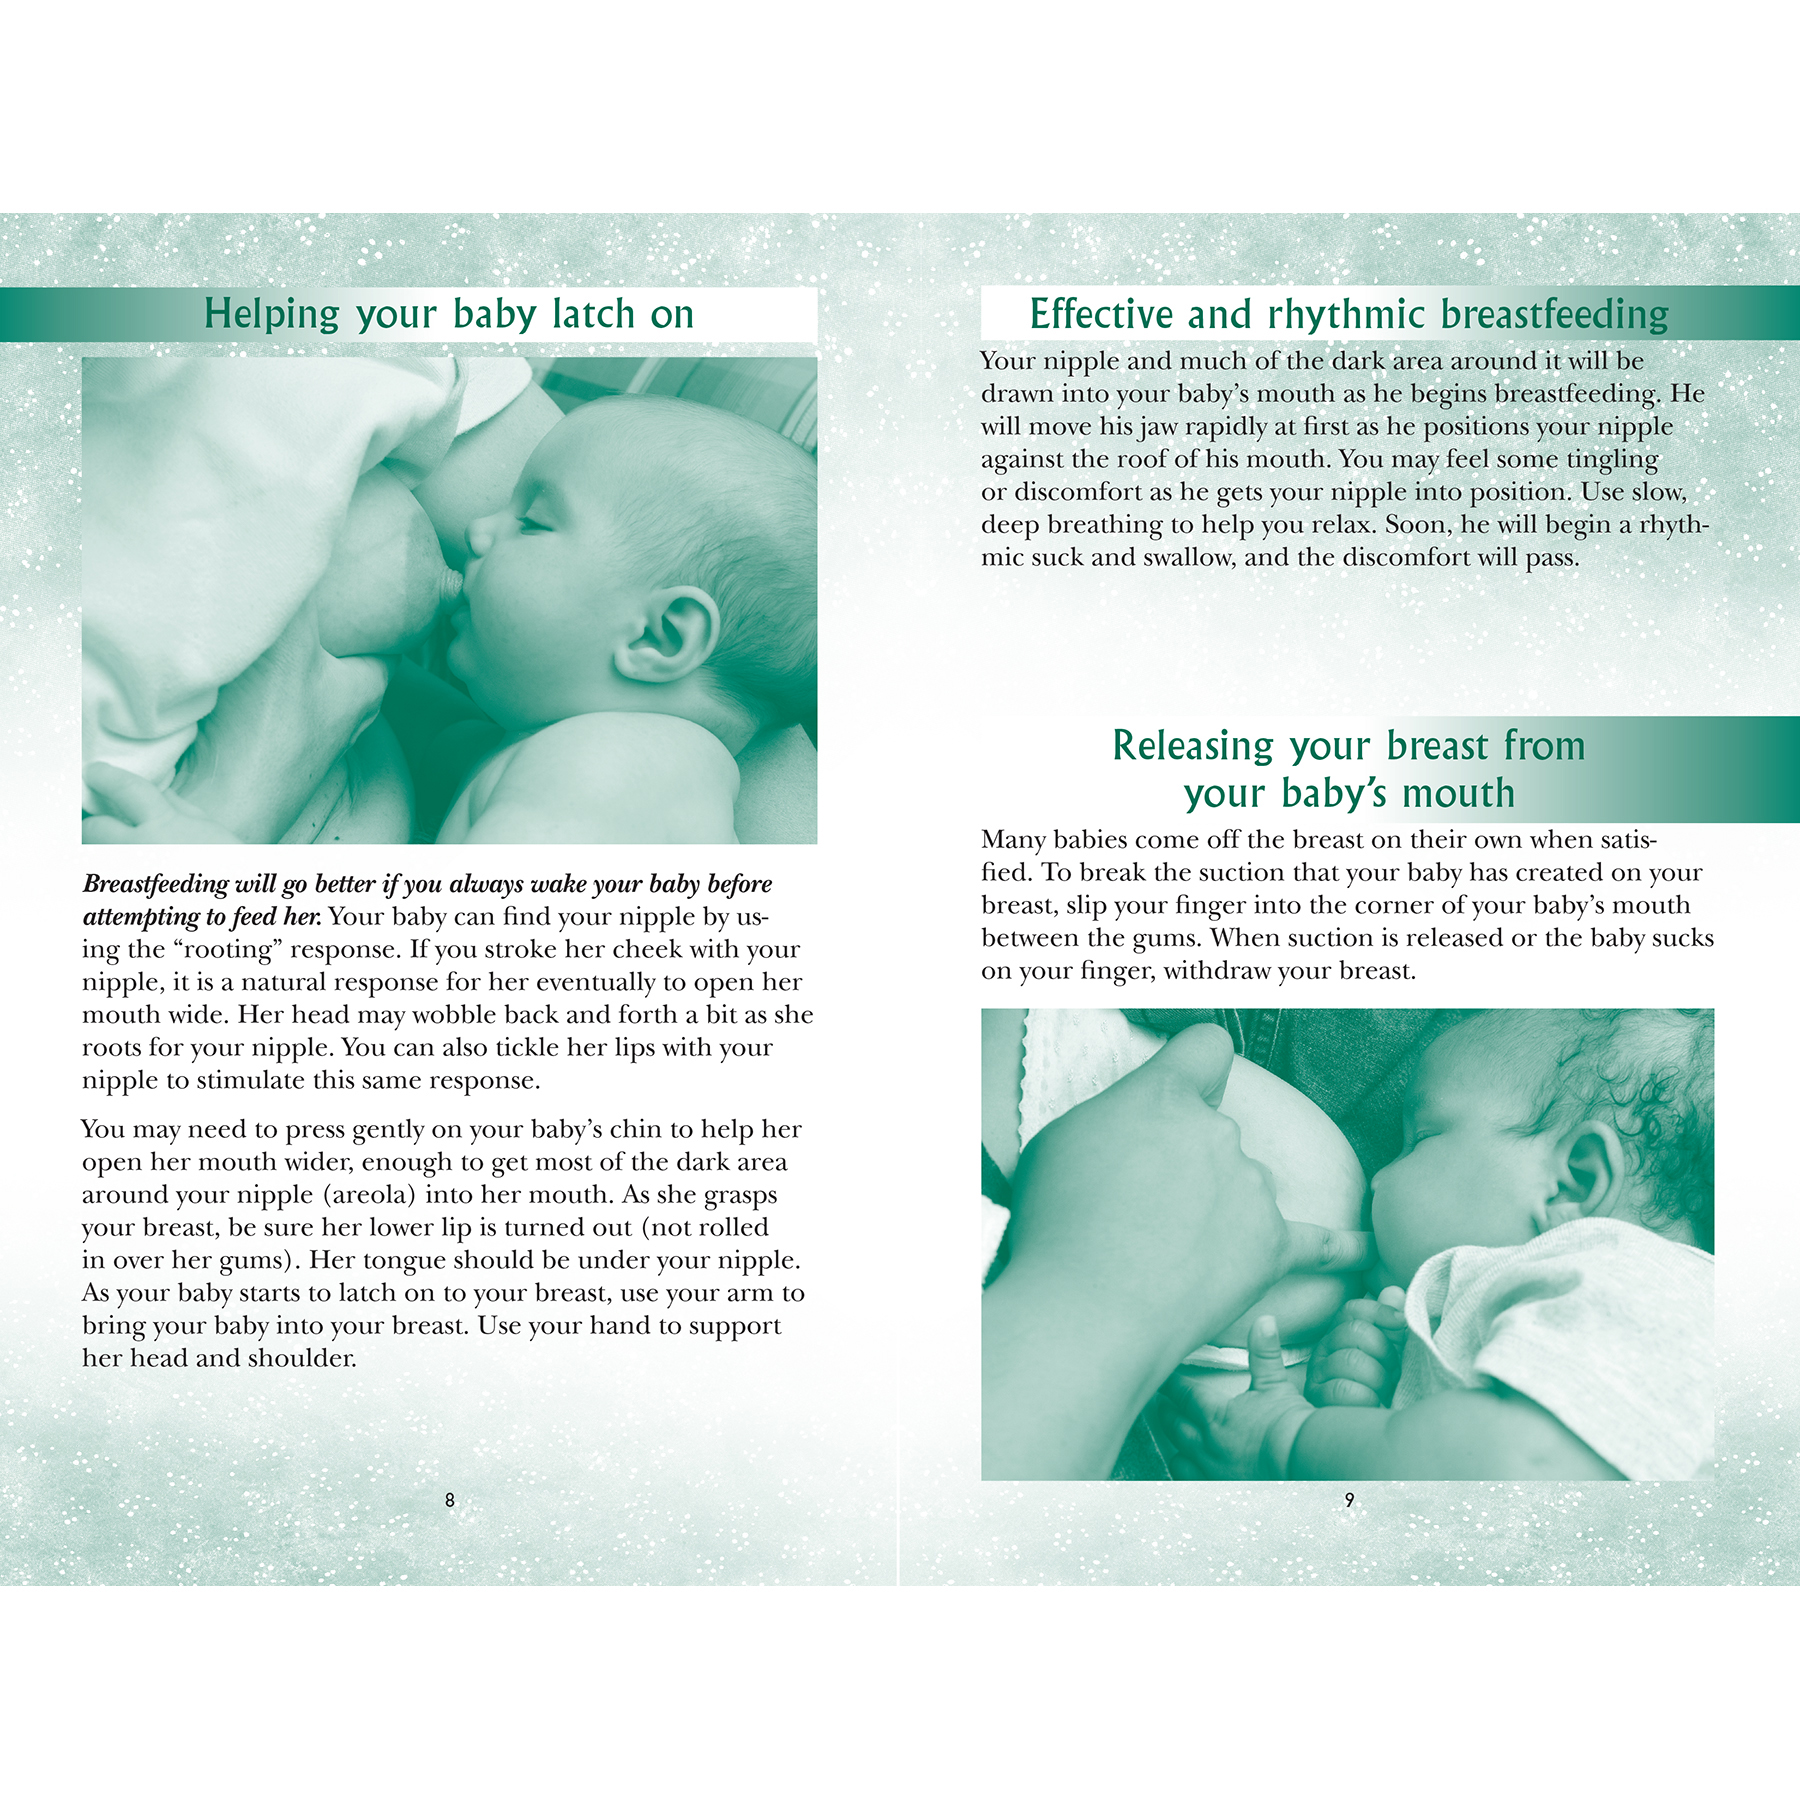 breastfeeding your baby for the first time 16-page booklet center spread shown, breastfeeding positions, propler latch and release, Childbirth Graphics, 38543